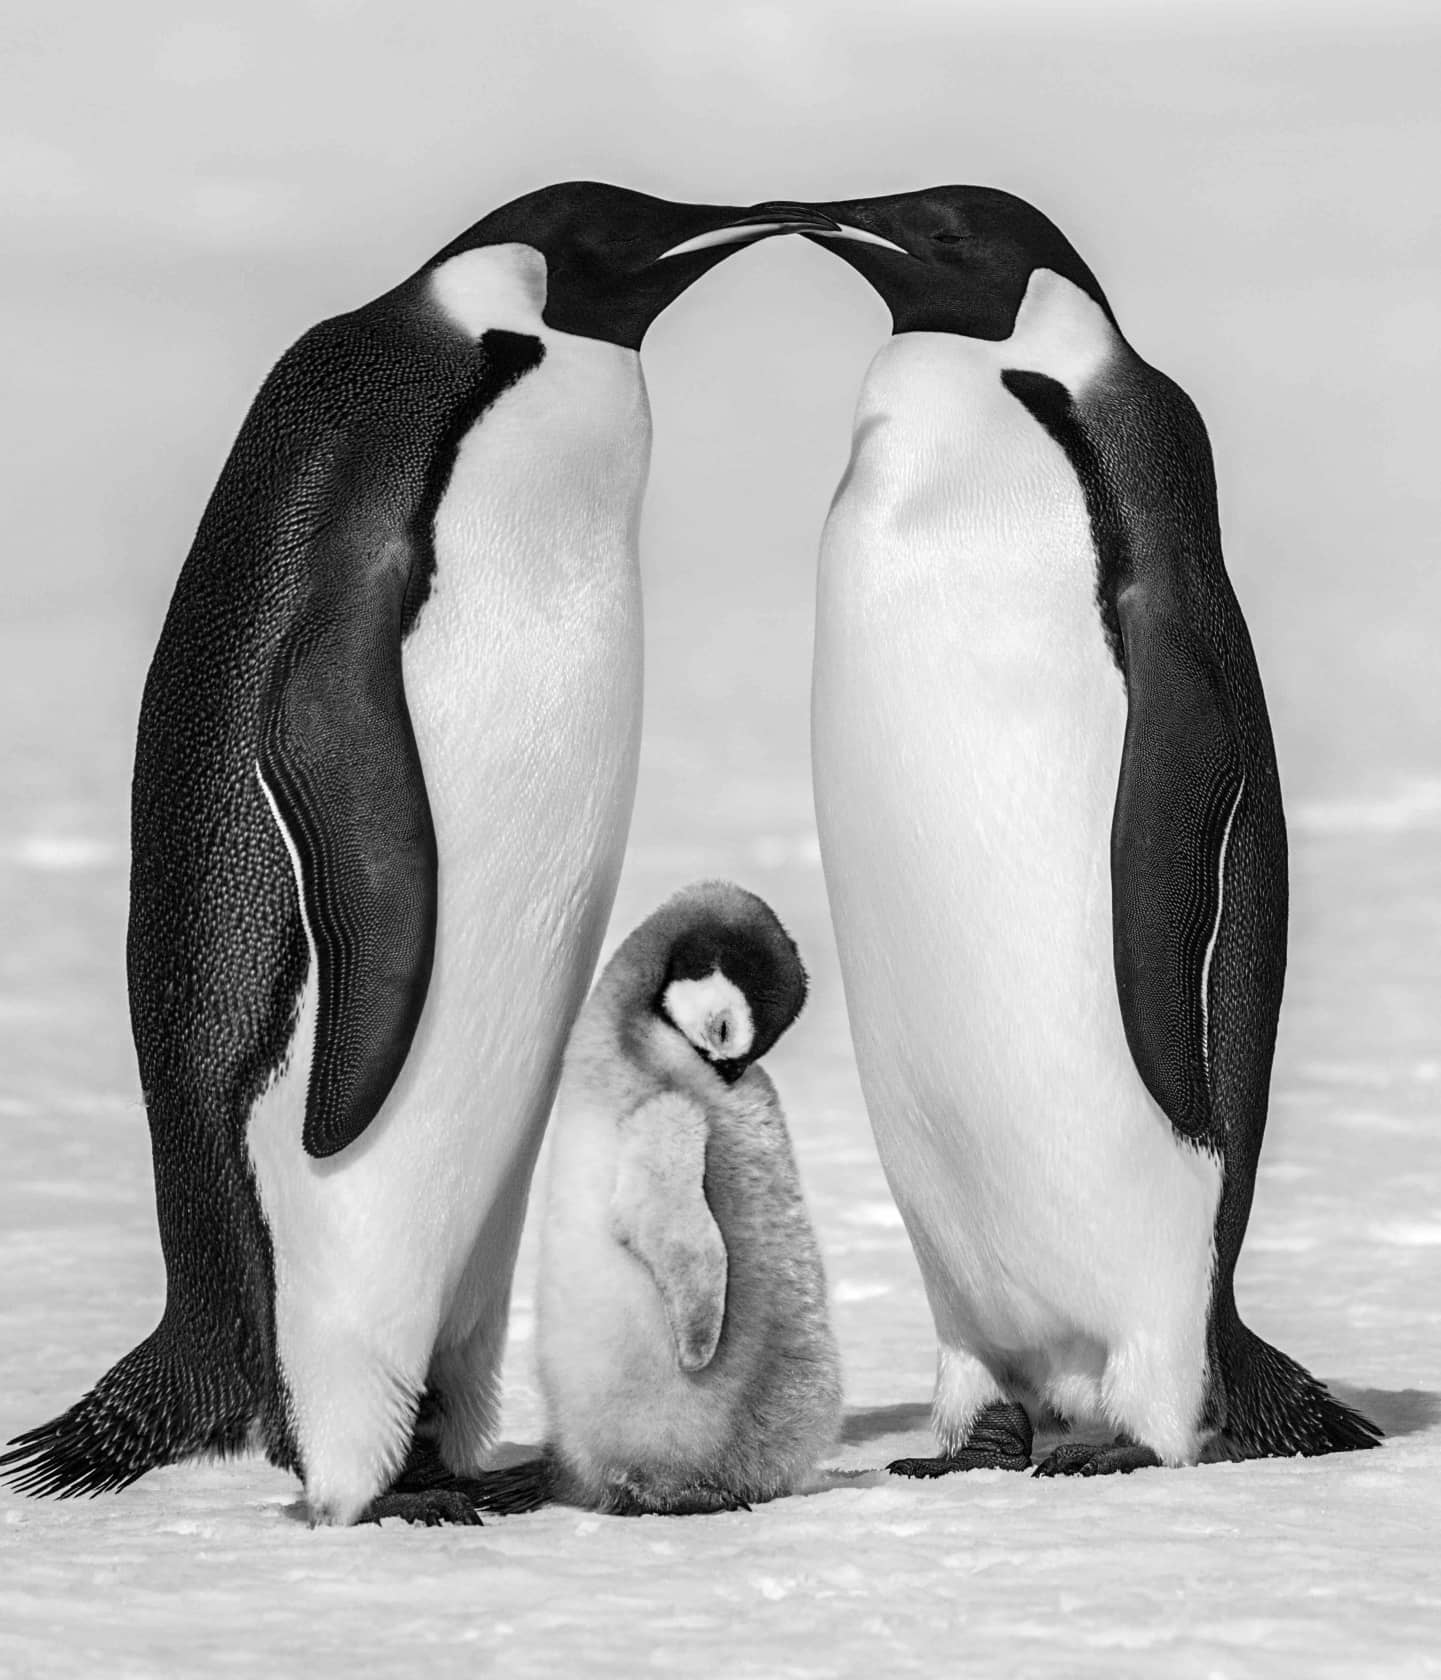 David Yarrow Contentment II Archival Pigment Print